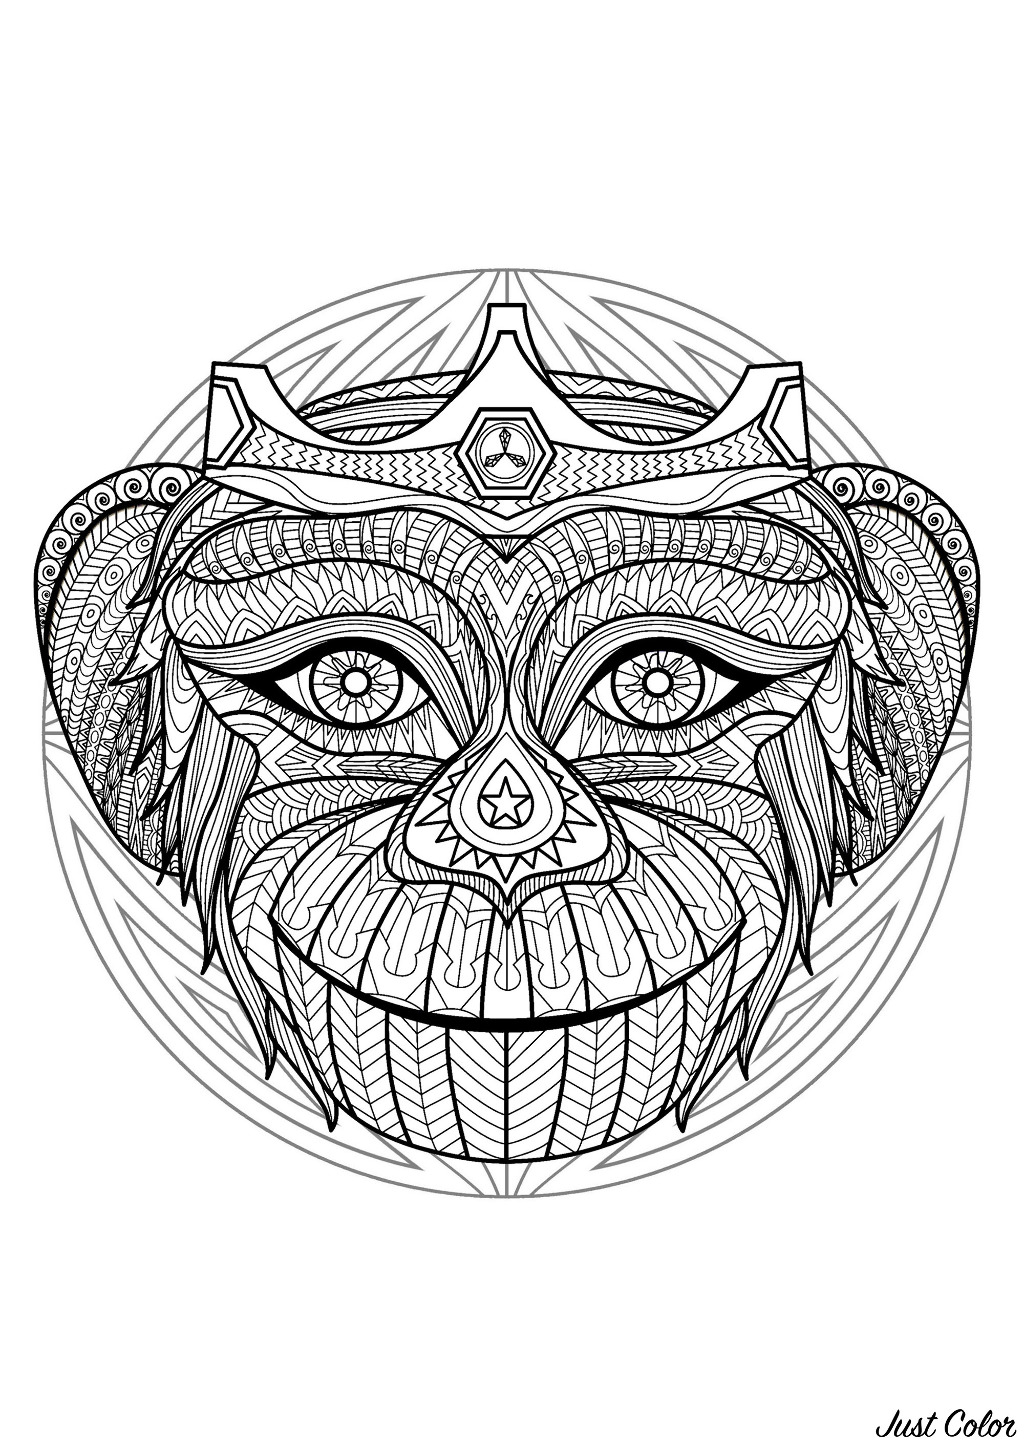 Complex Mandala Coloring Page With Monkey Head 2